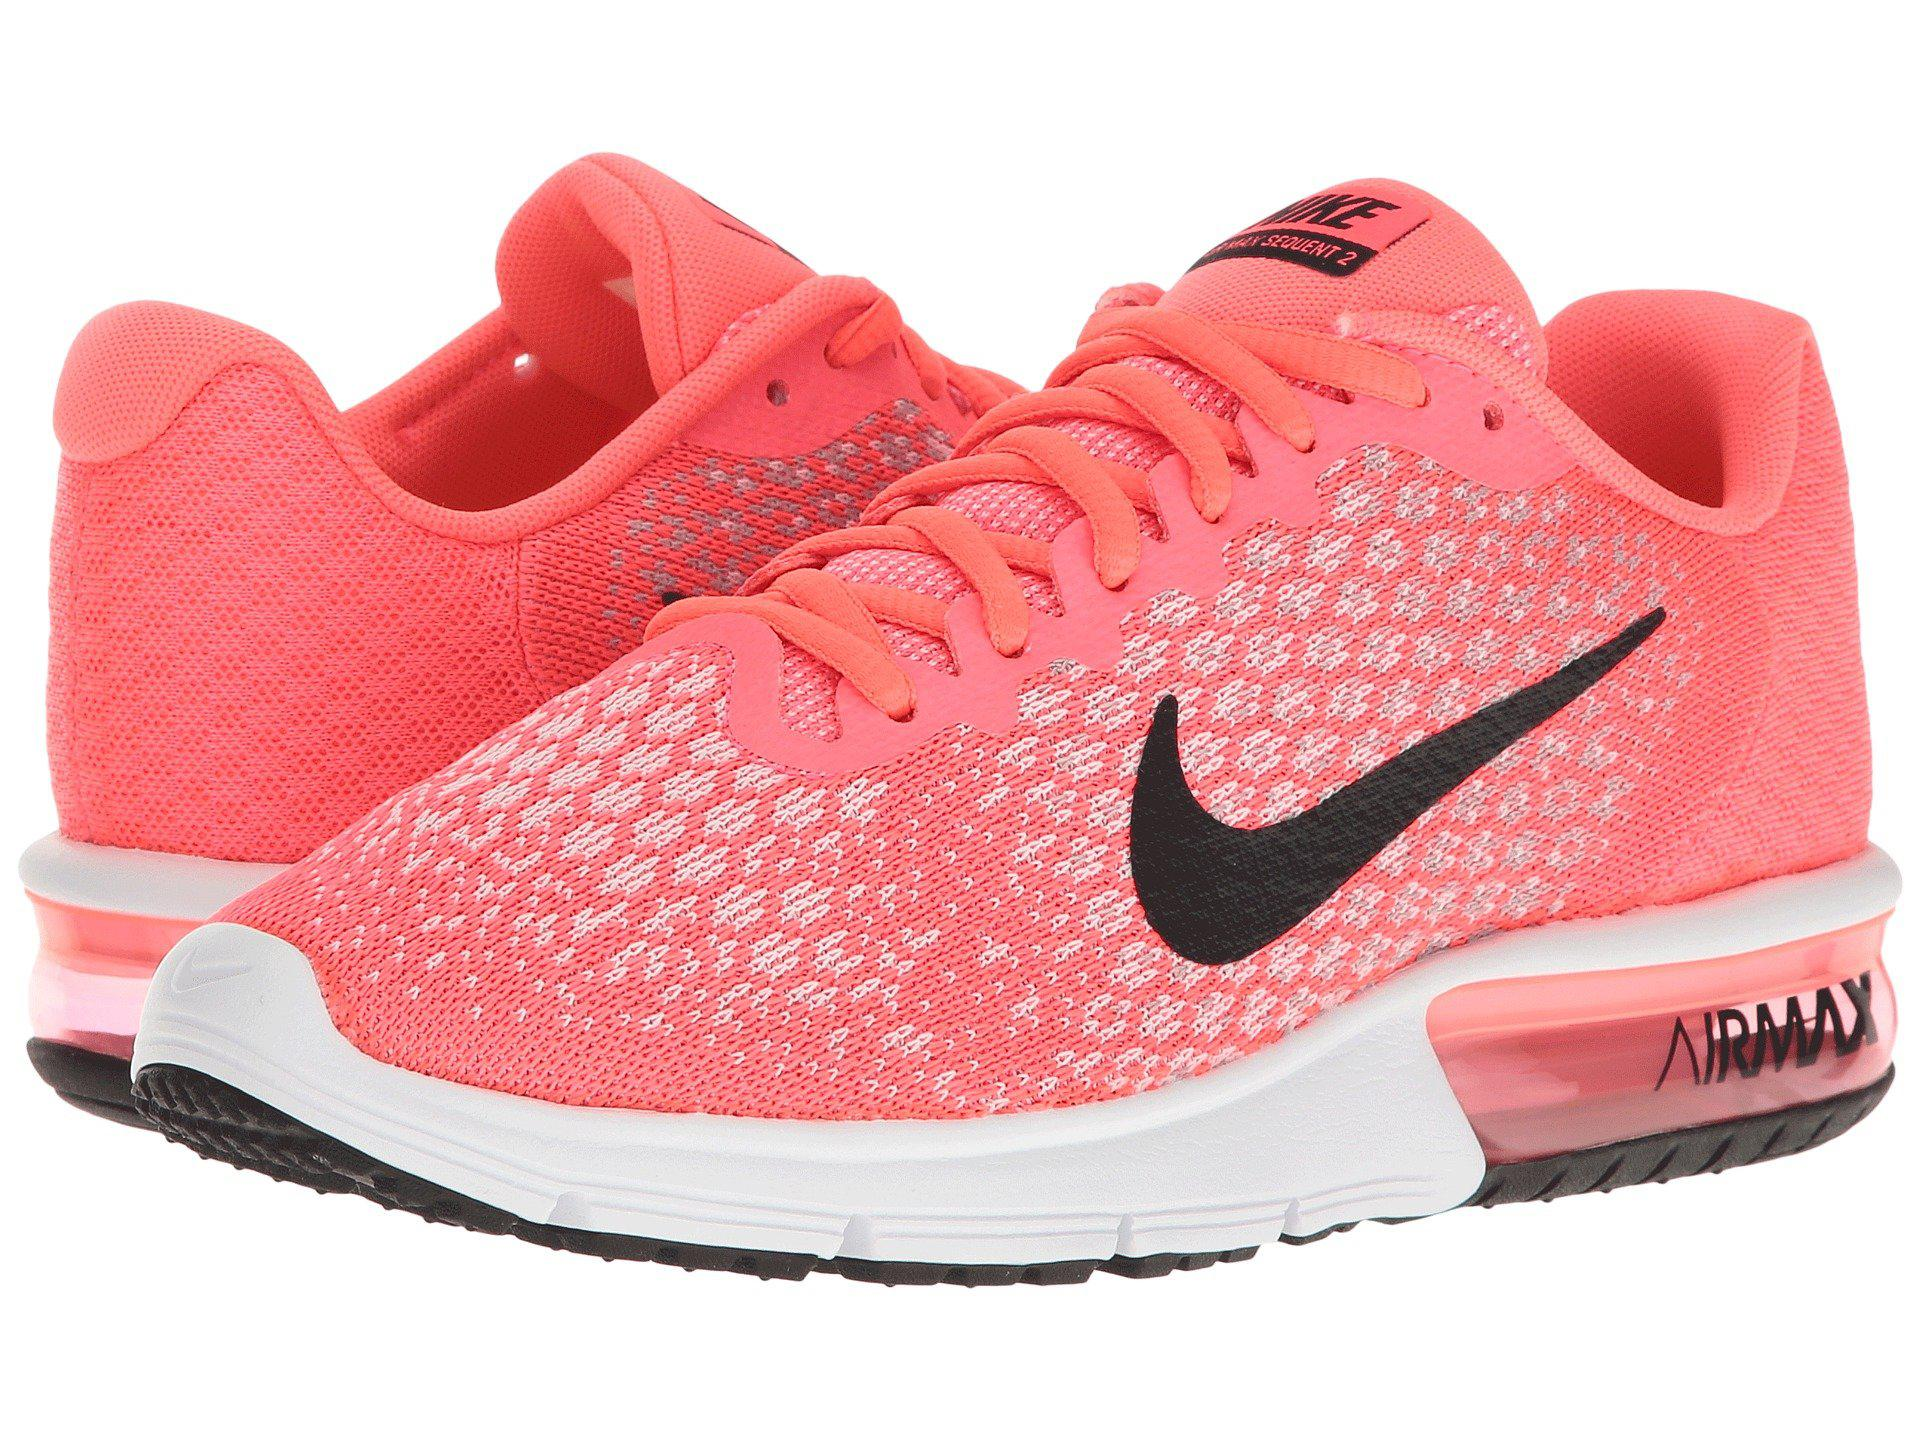 bc6ef3967f Nike Air Max Sequent 2 in Pink - Lyst